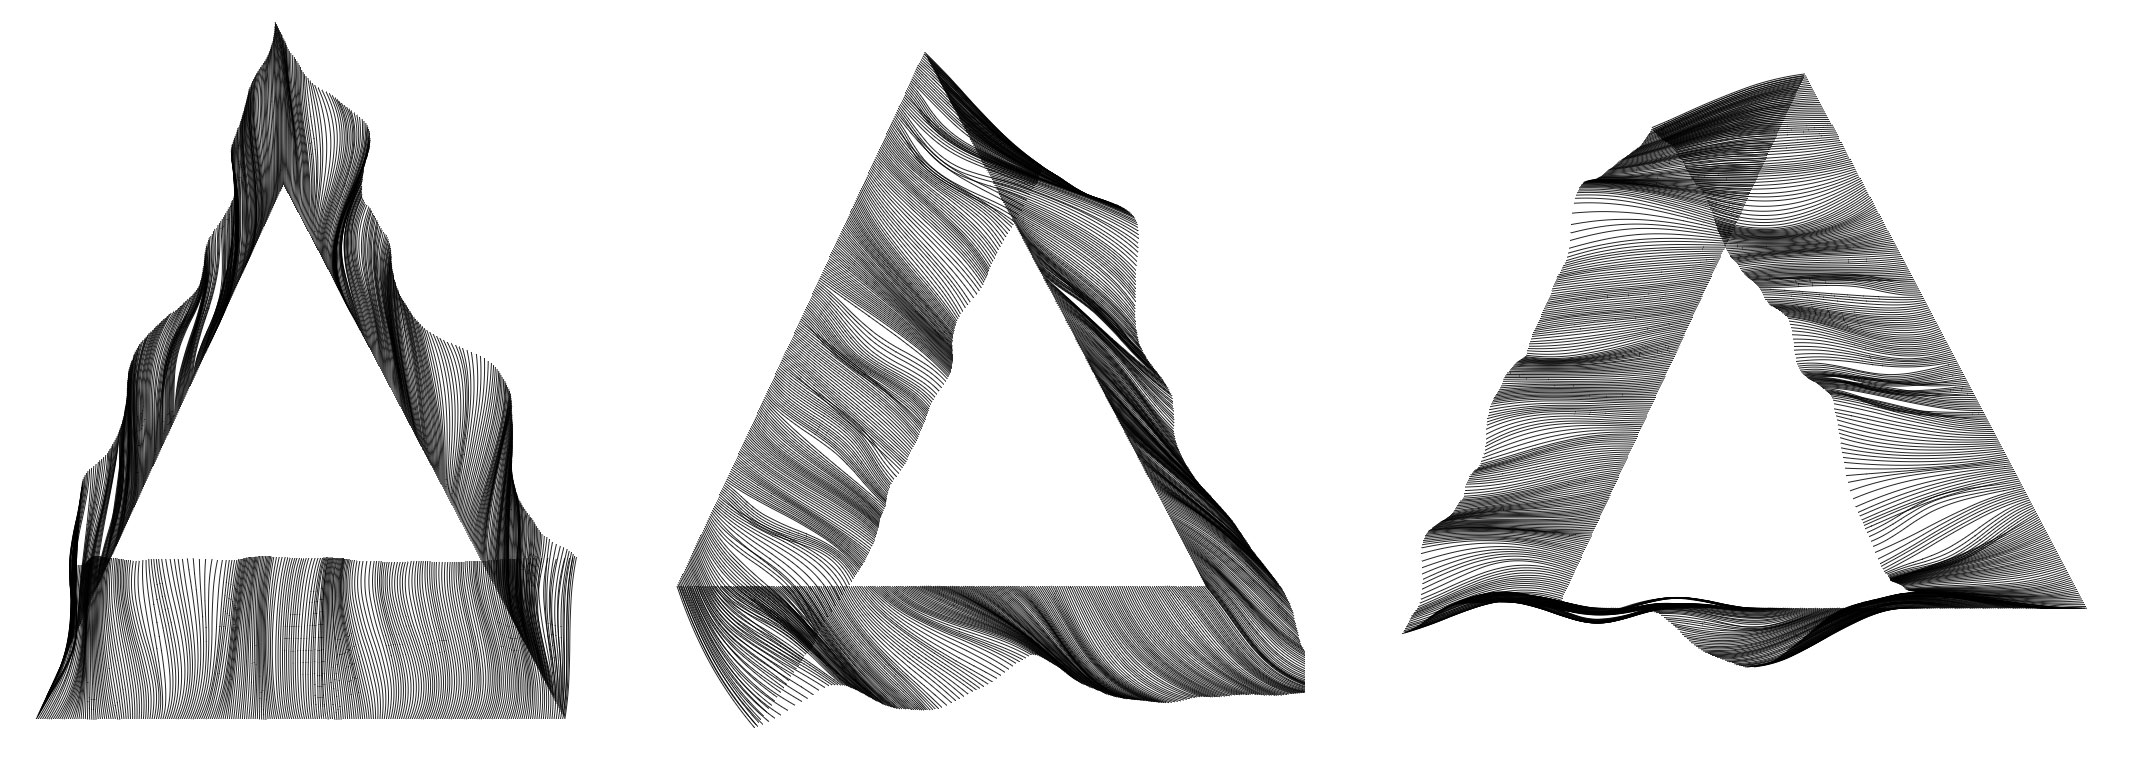 Perlin Noise on triangle perimeter